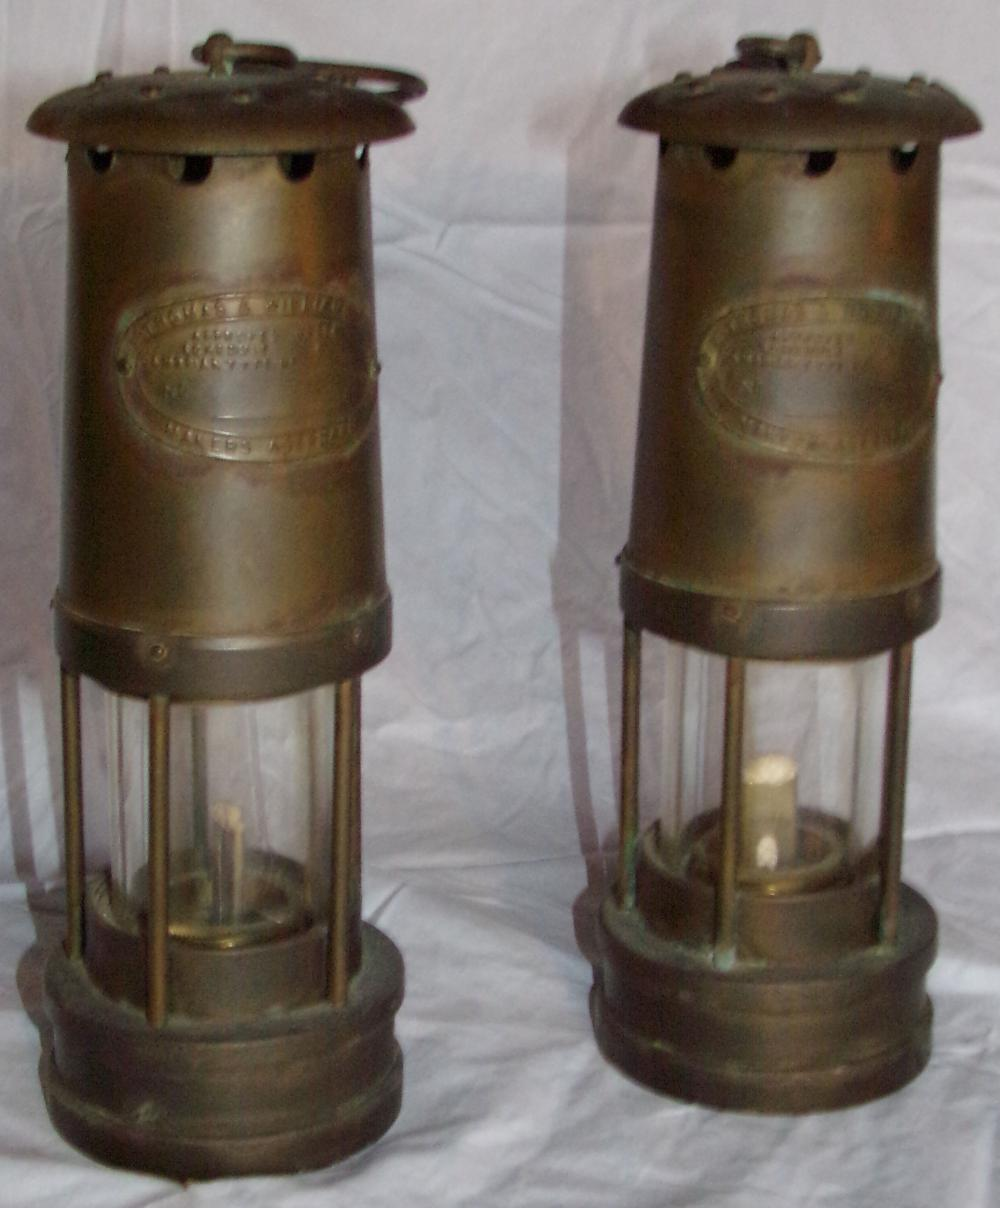 "Pair of brass lanterns marked E. Thomas & Williams, Ltd. Makers Aberdore, with hook hangers, each are 9 5/8"" T x 3 3/8"" base diameter"